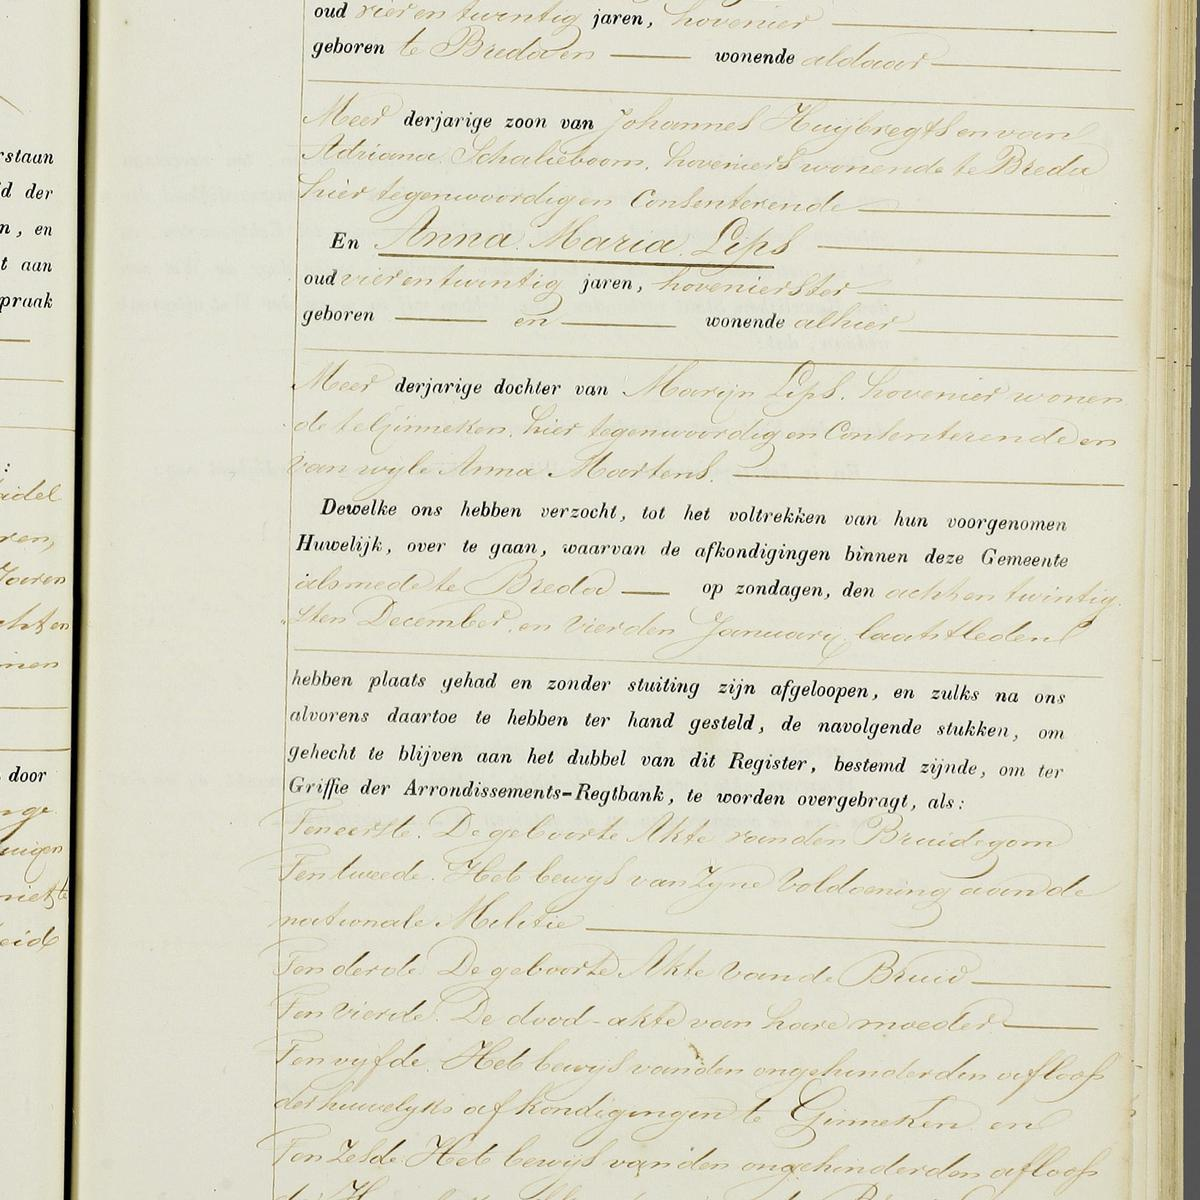 Civil registry of marriages, Ginneken en Bavel, 1857, record 2, right page